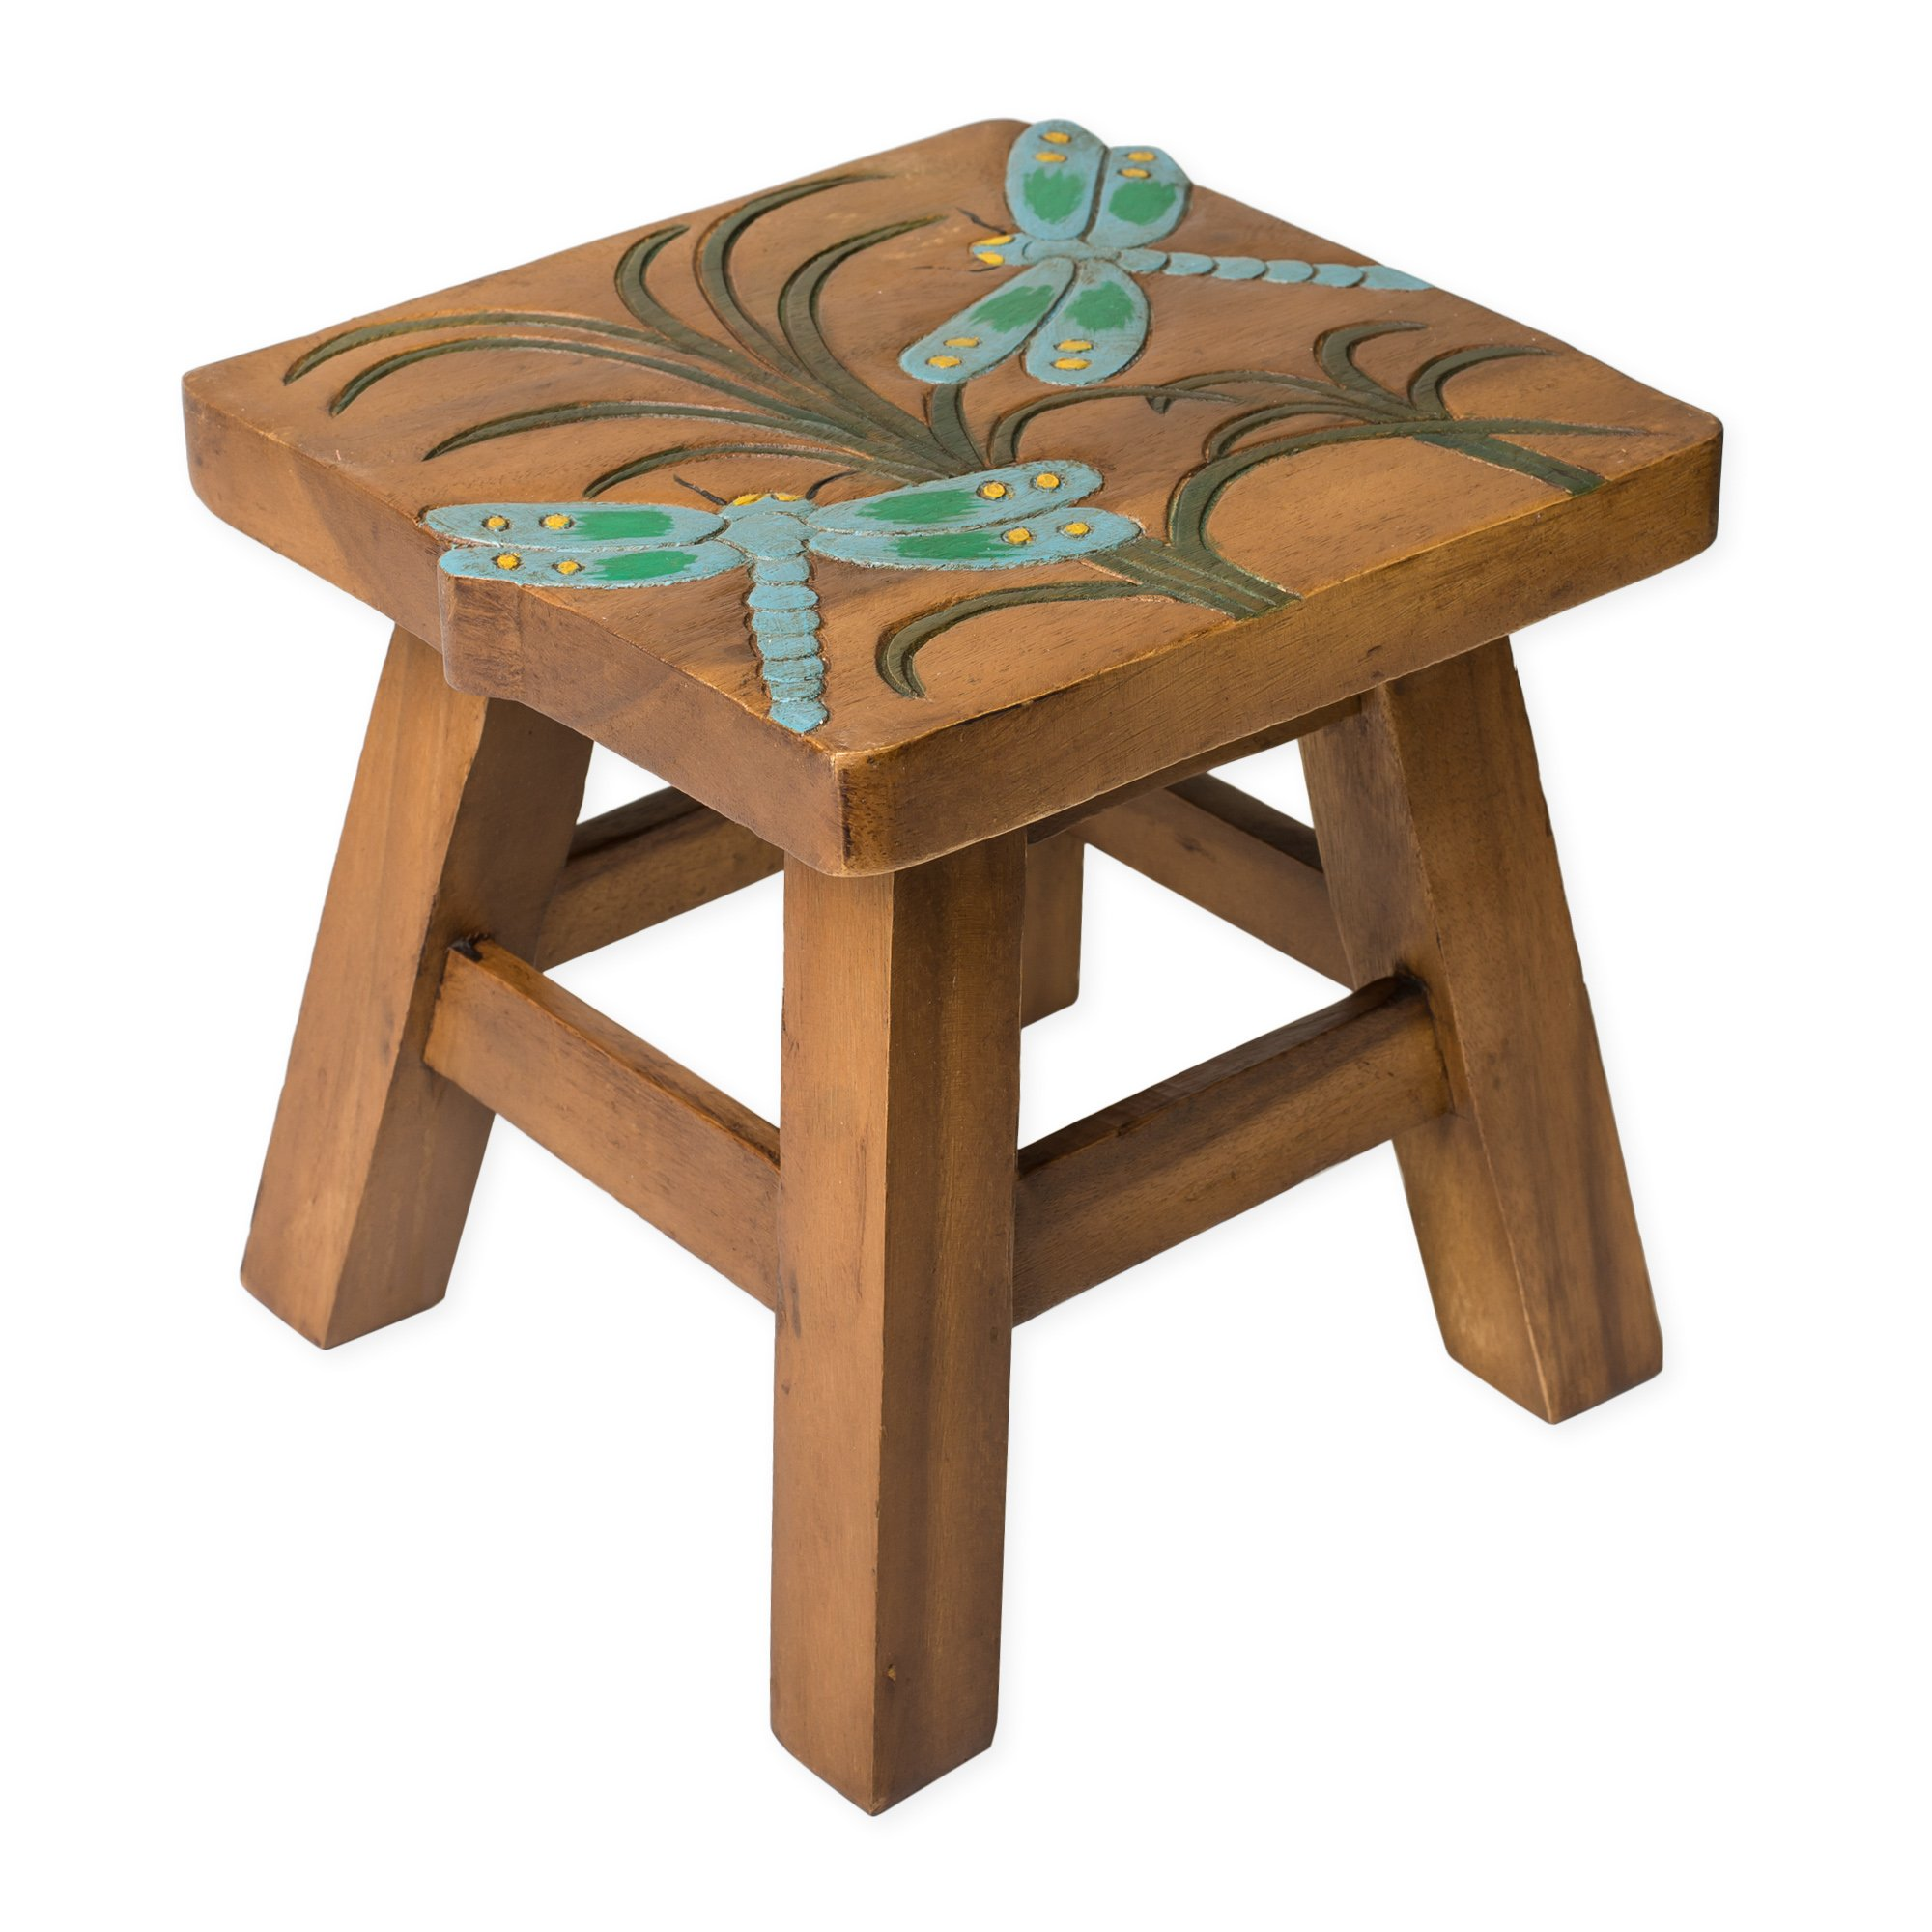 Dragonfly Design Hand Carved Acacia Hardwood Decorative Short Stool